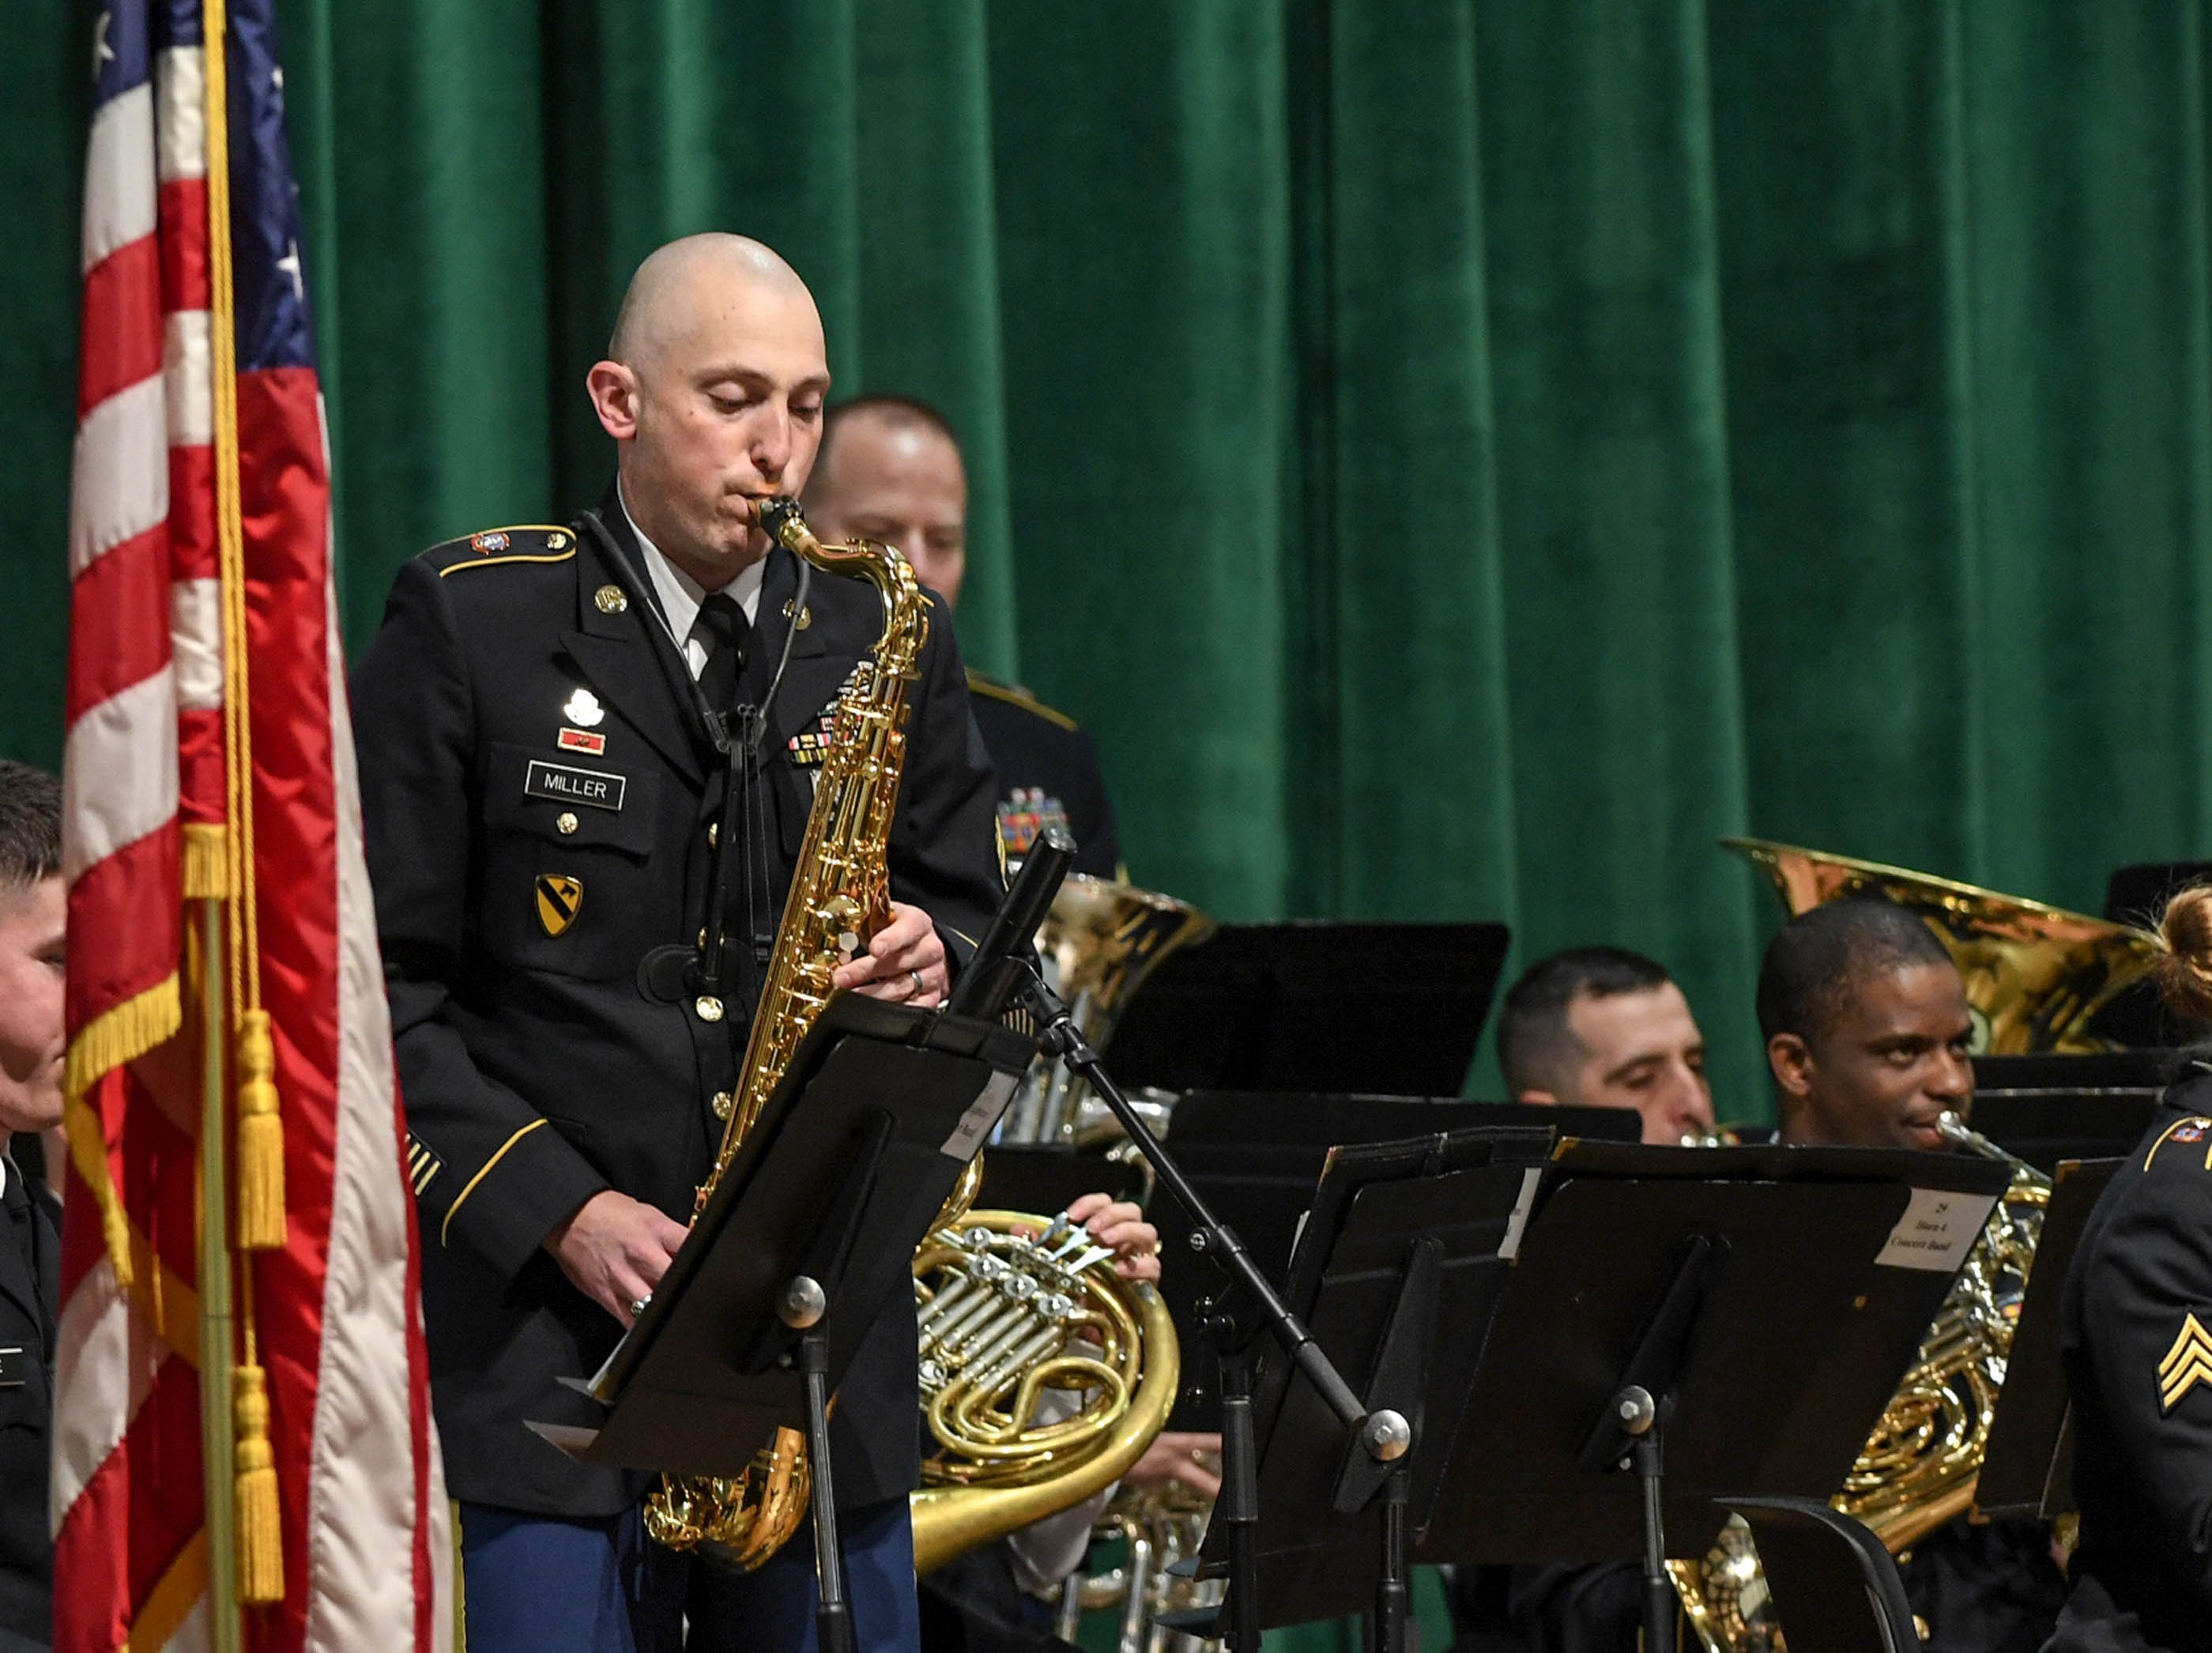 SGT William Gibson plays saxophone solo with the 282d U.S. Army Band during a free concert at T.L. Hanna High School in Anderson Thursday, March 7.